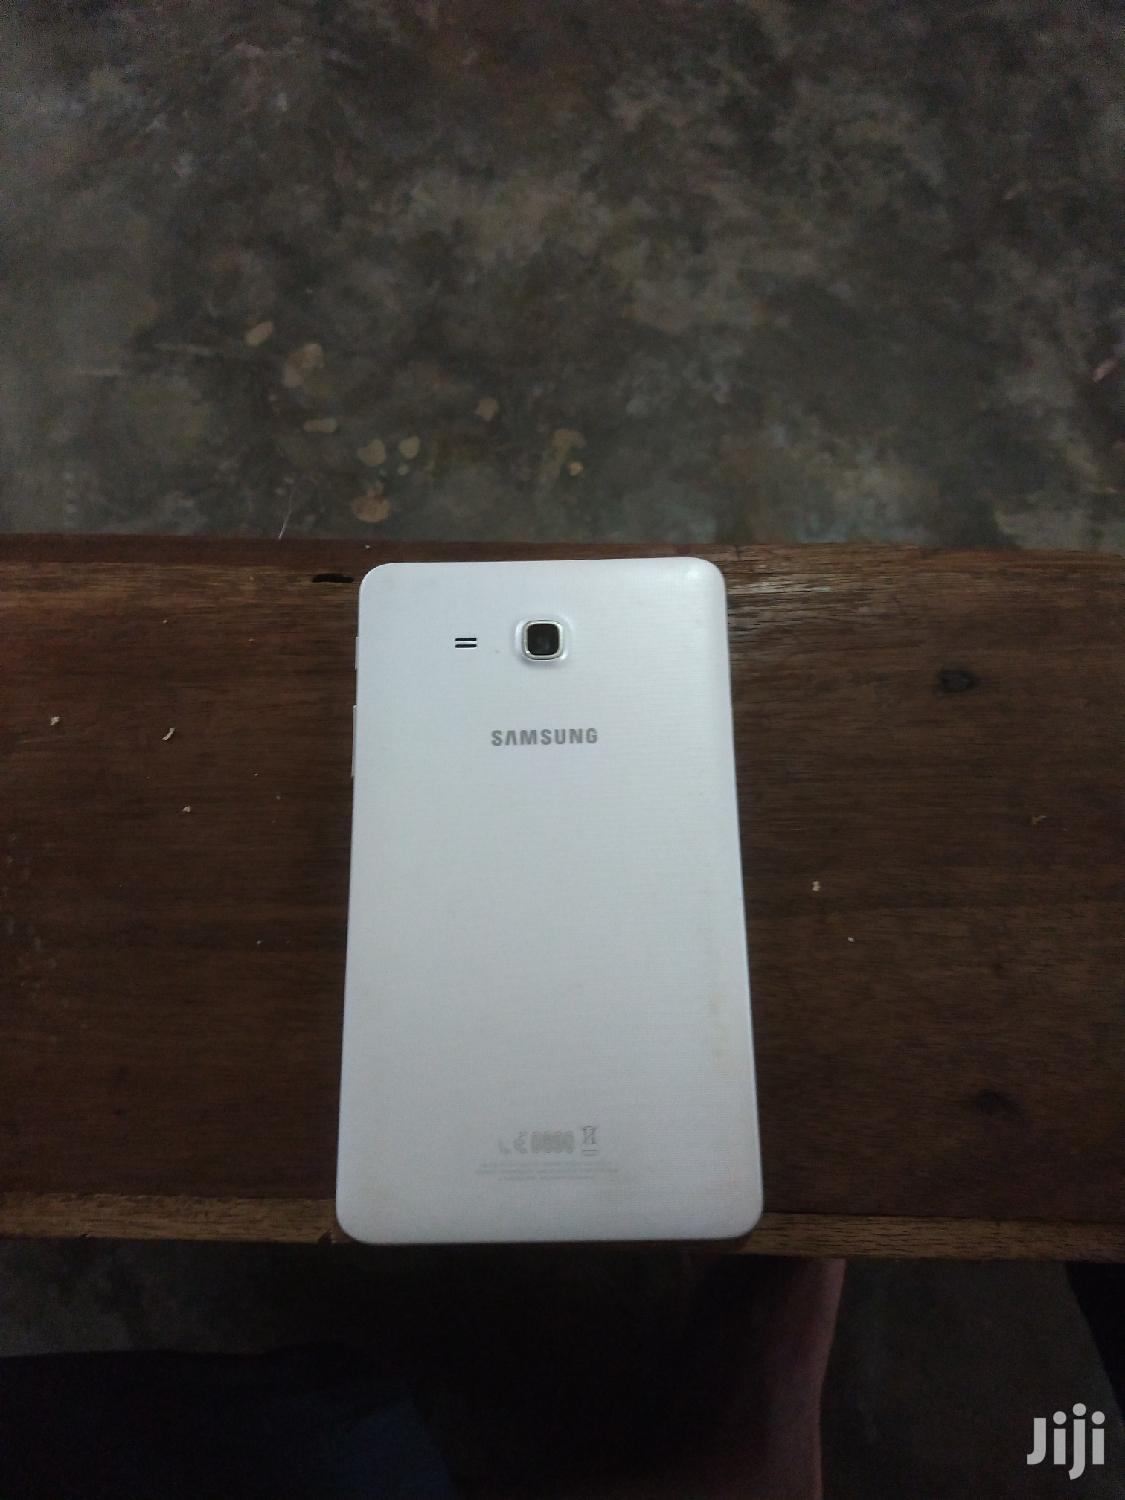 Archive: Samsung Galaxy Tab 4 8.0 3G 8 GB White